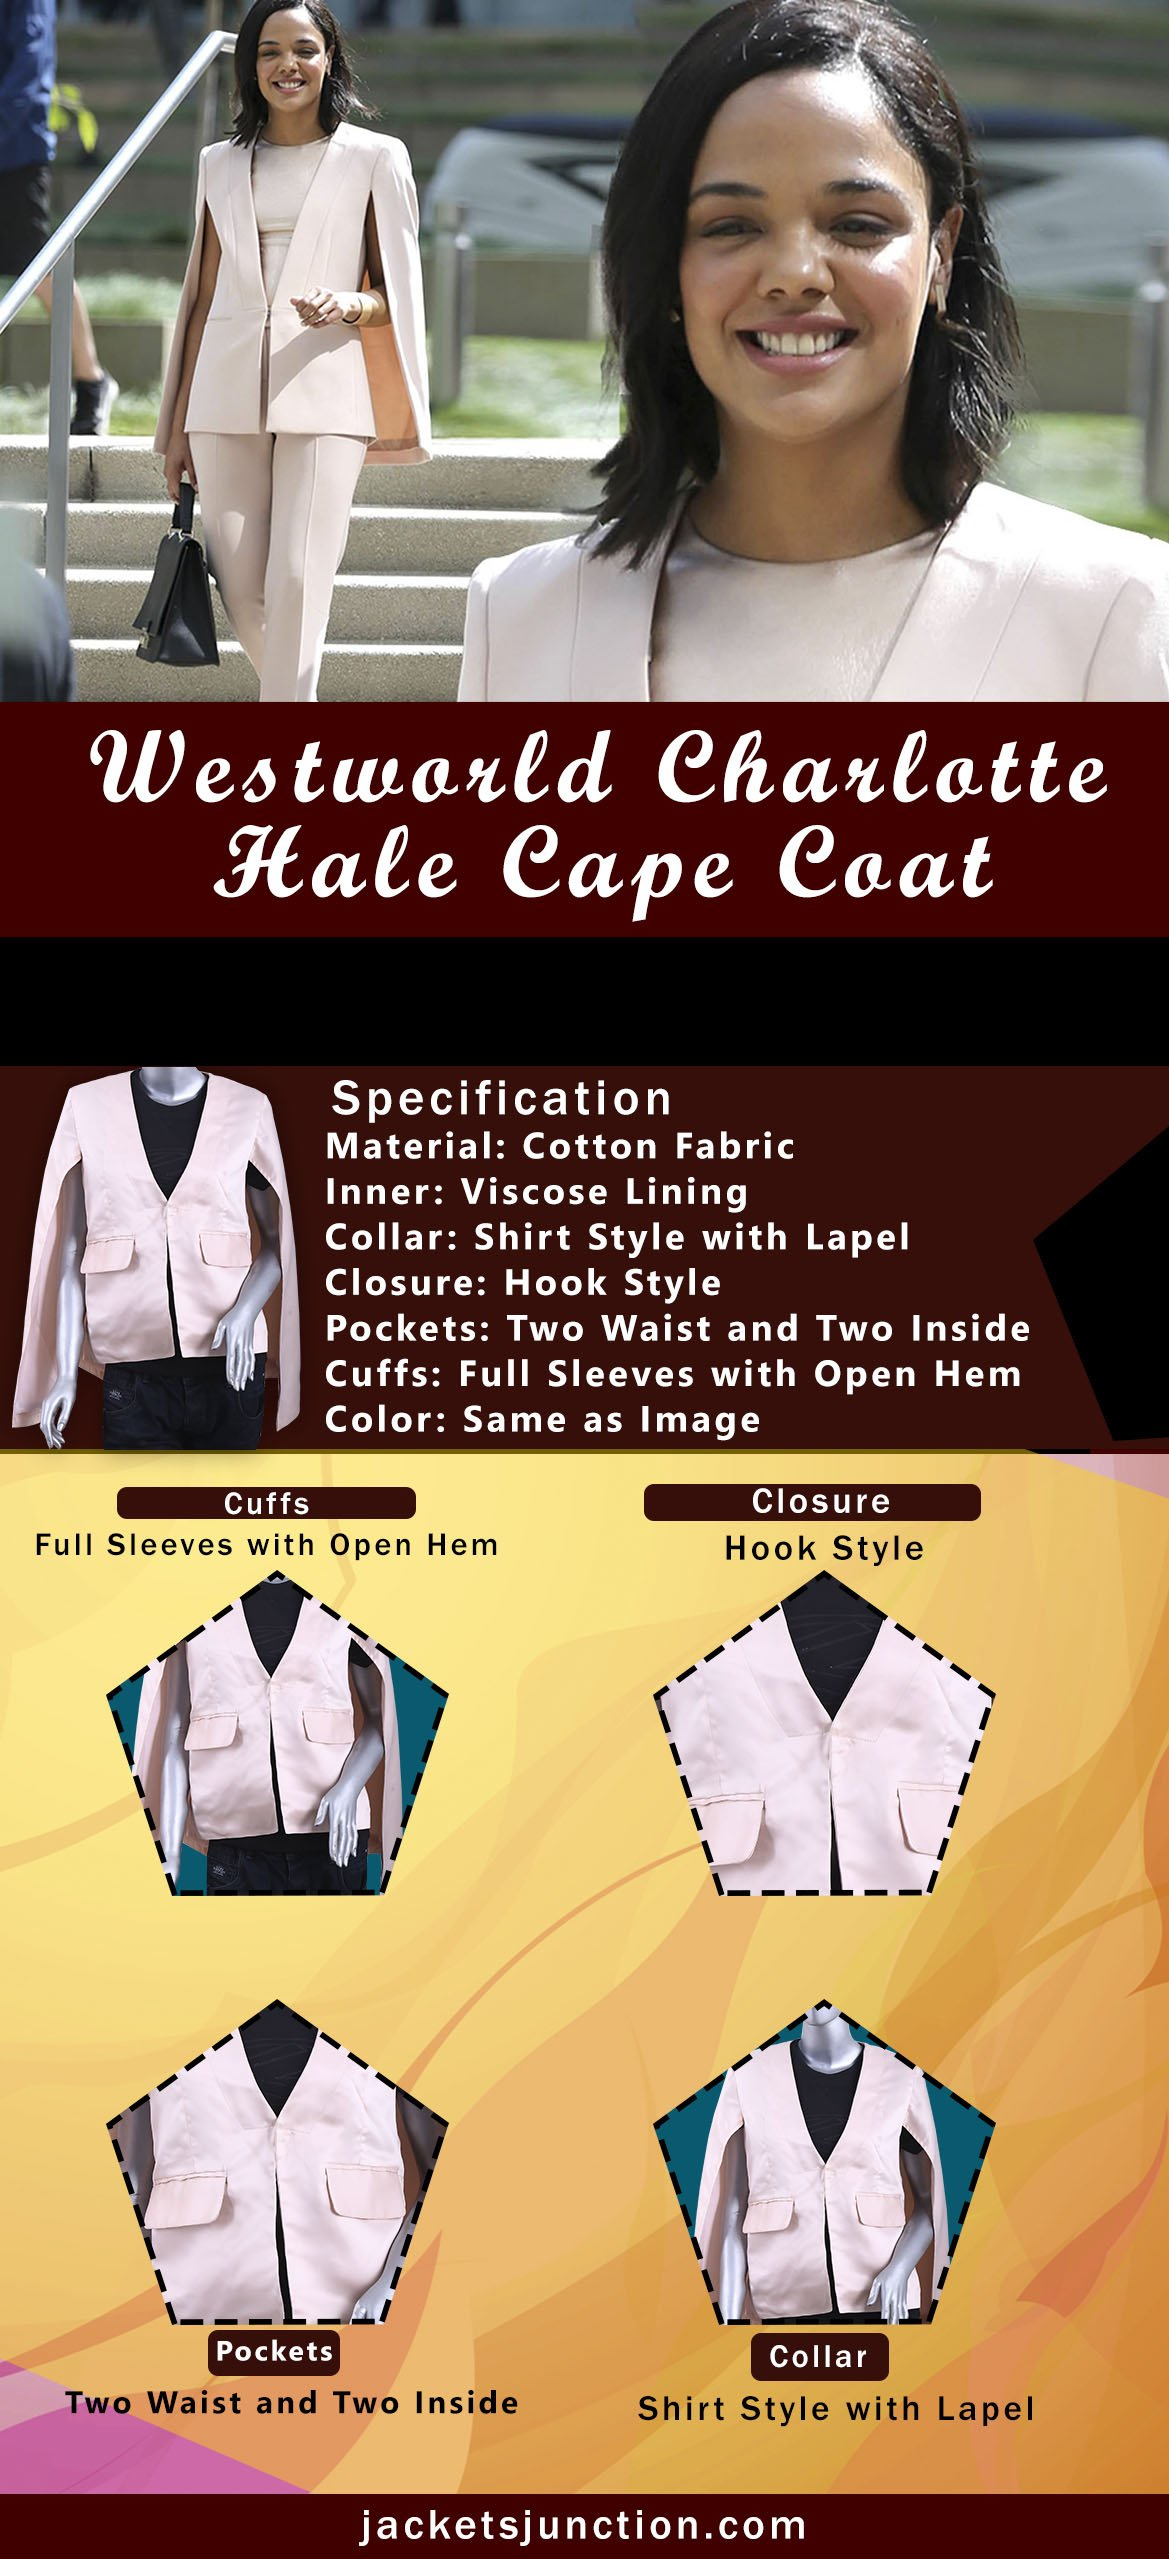 Westworld Charlotte Hale Cape Coat Infographic